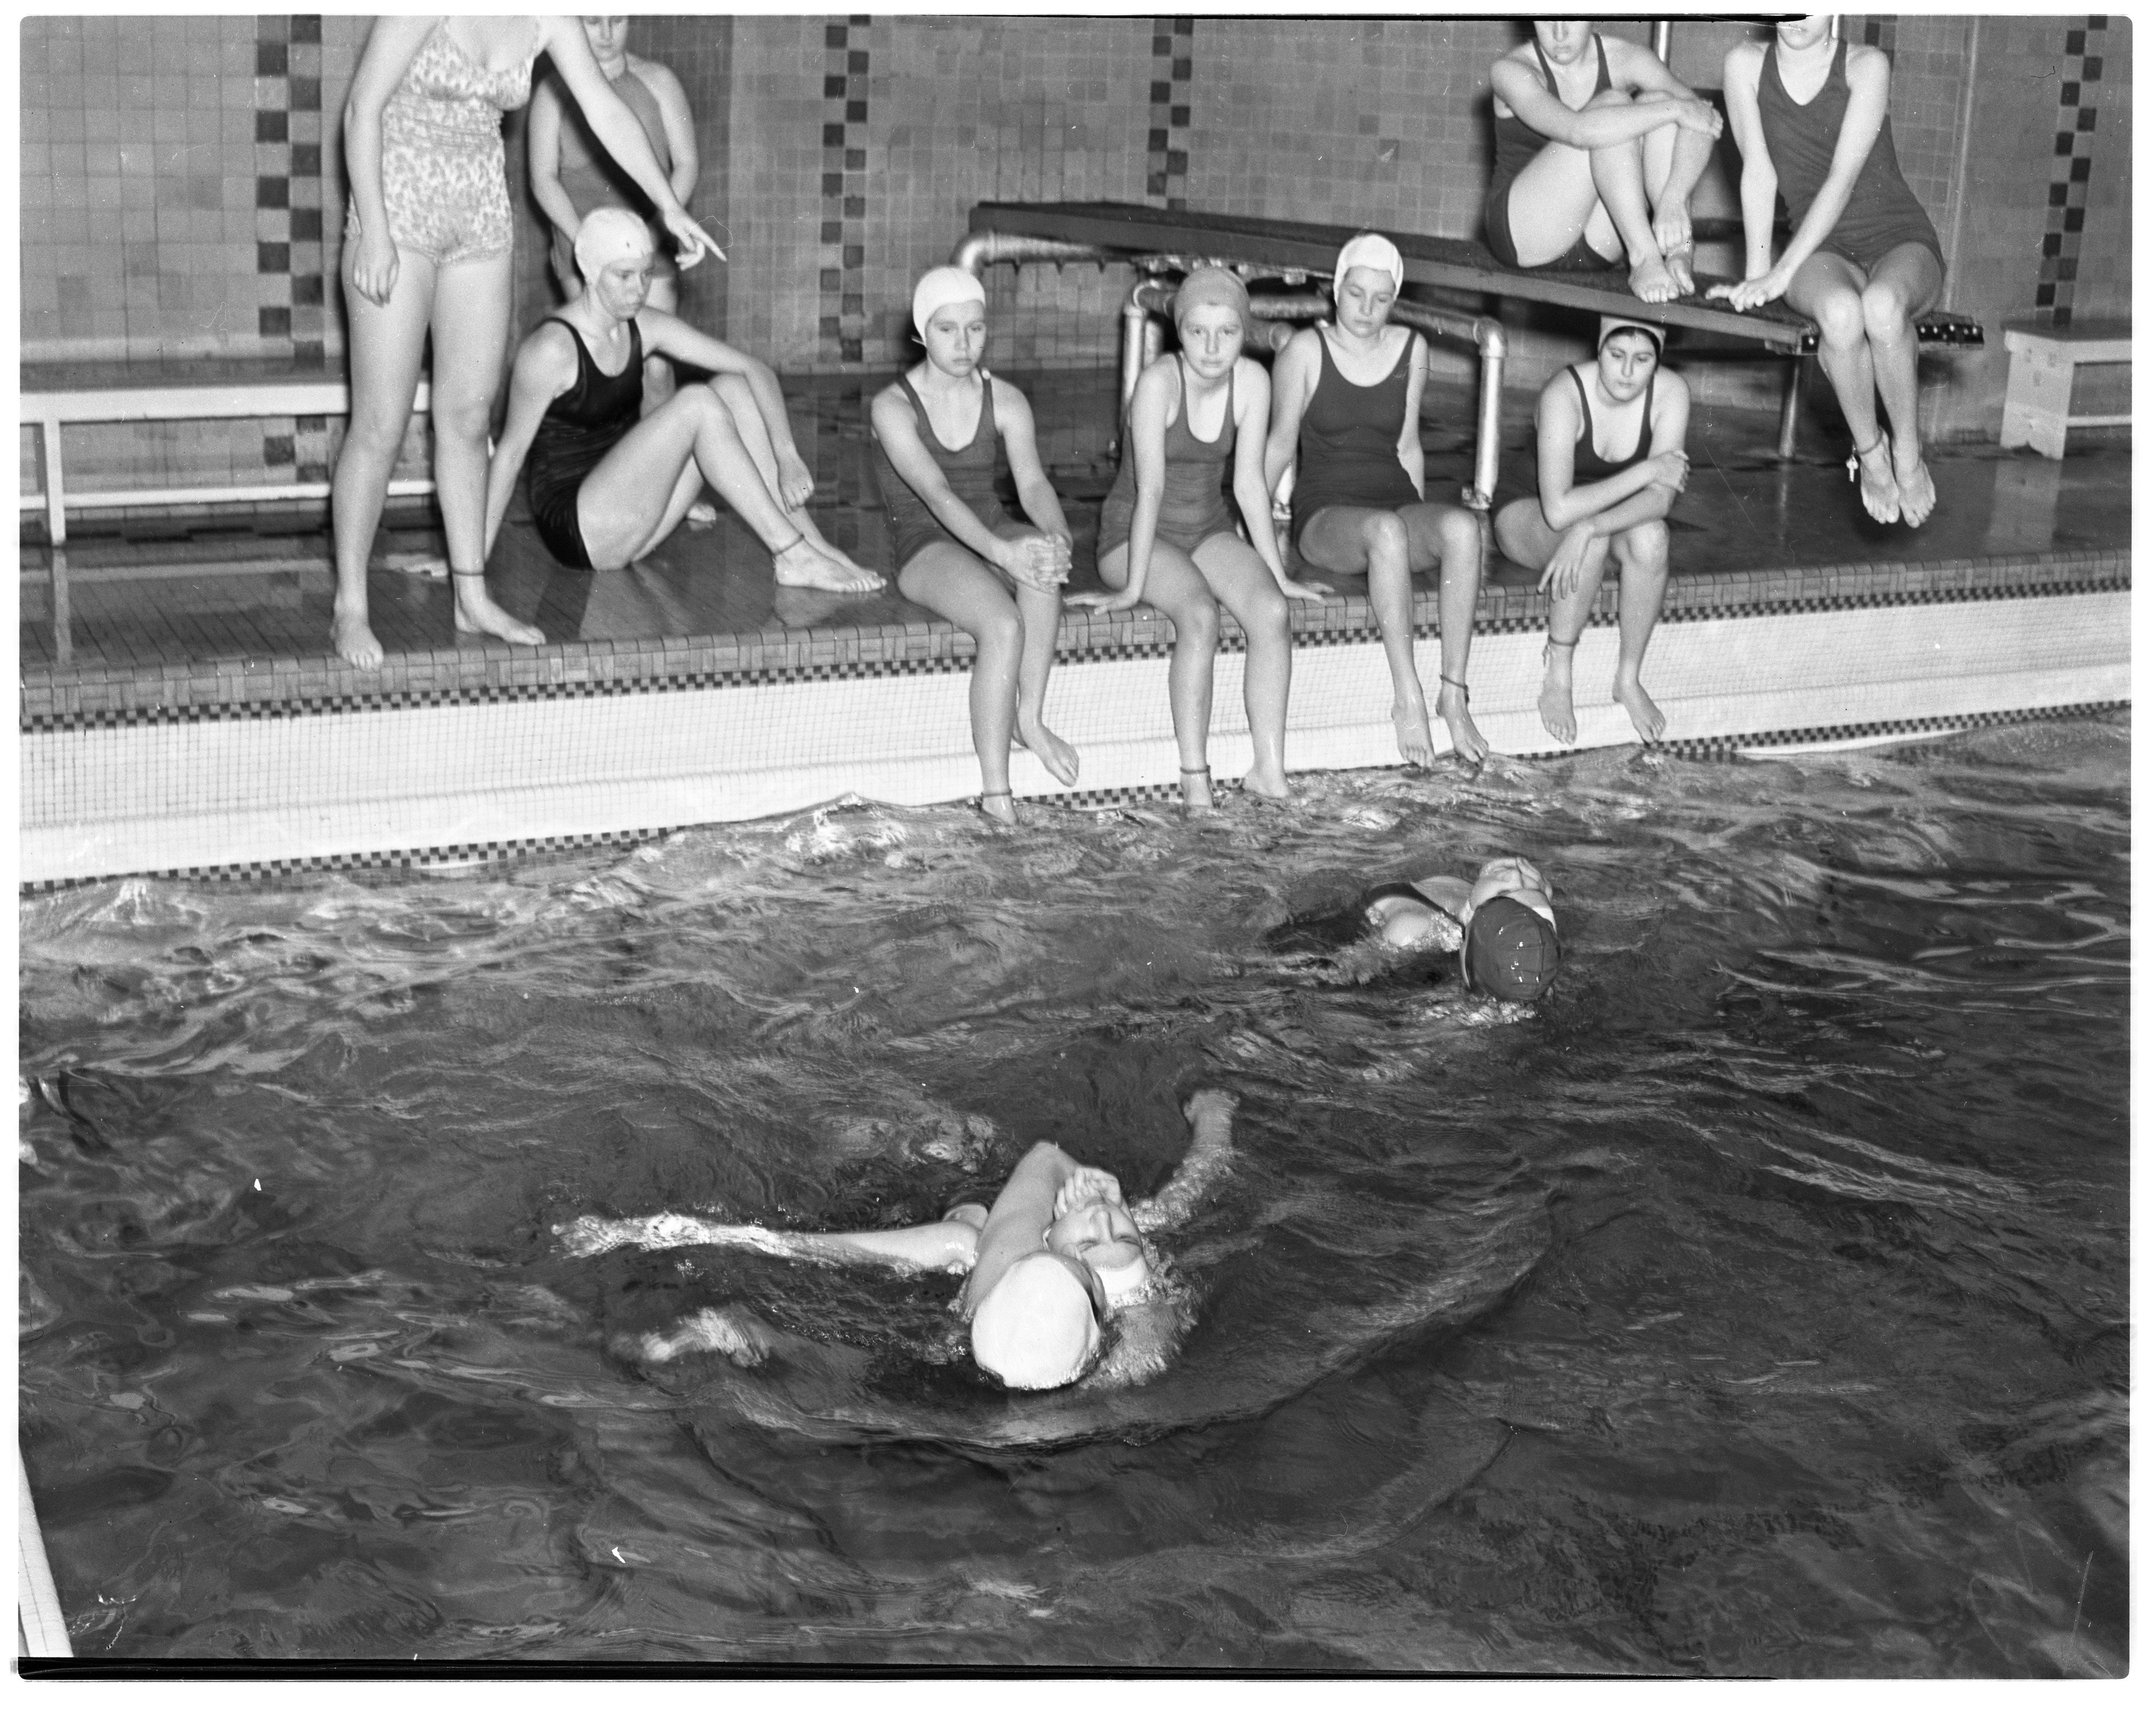 Red Cross - Girl's Lifesaving Class at the Michigan Union Pool image